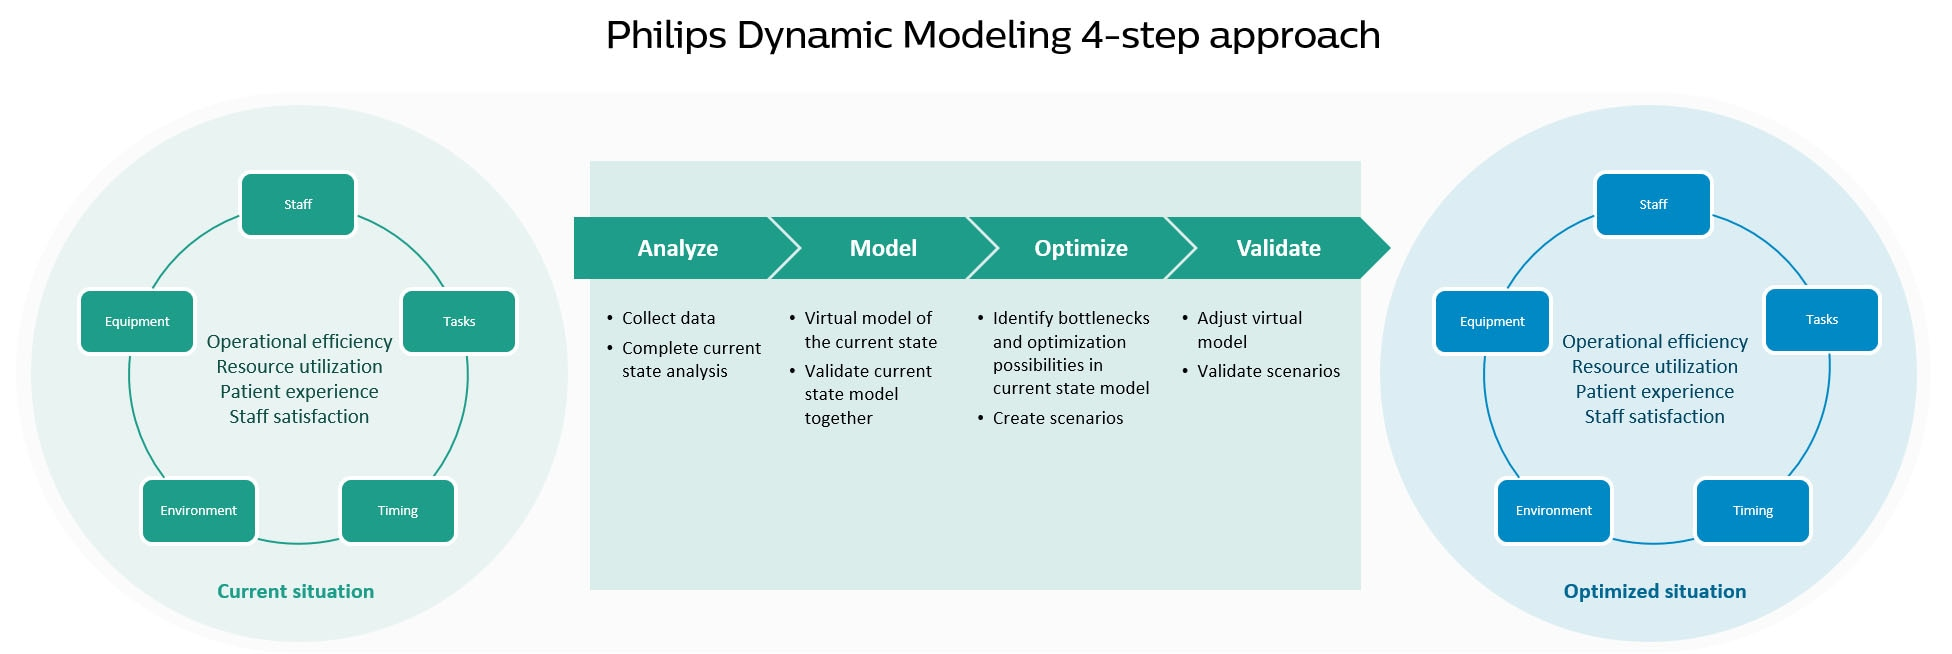 dynamic modeling DM step extensive download image